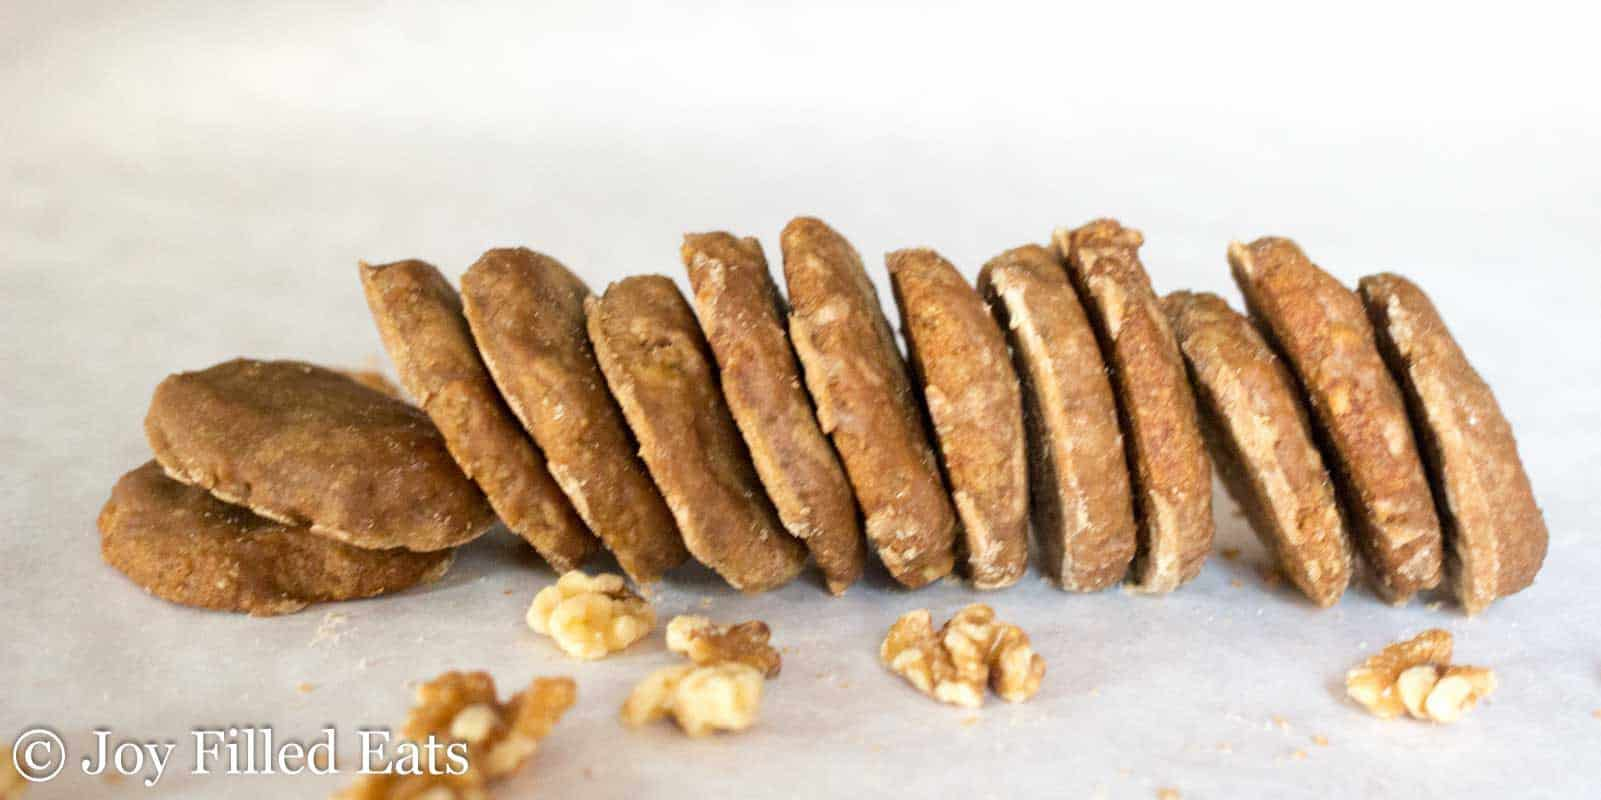 Glazed Maple Walnut Cookies - Low Carb, Grain/Sugar/Egg Free, THM S